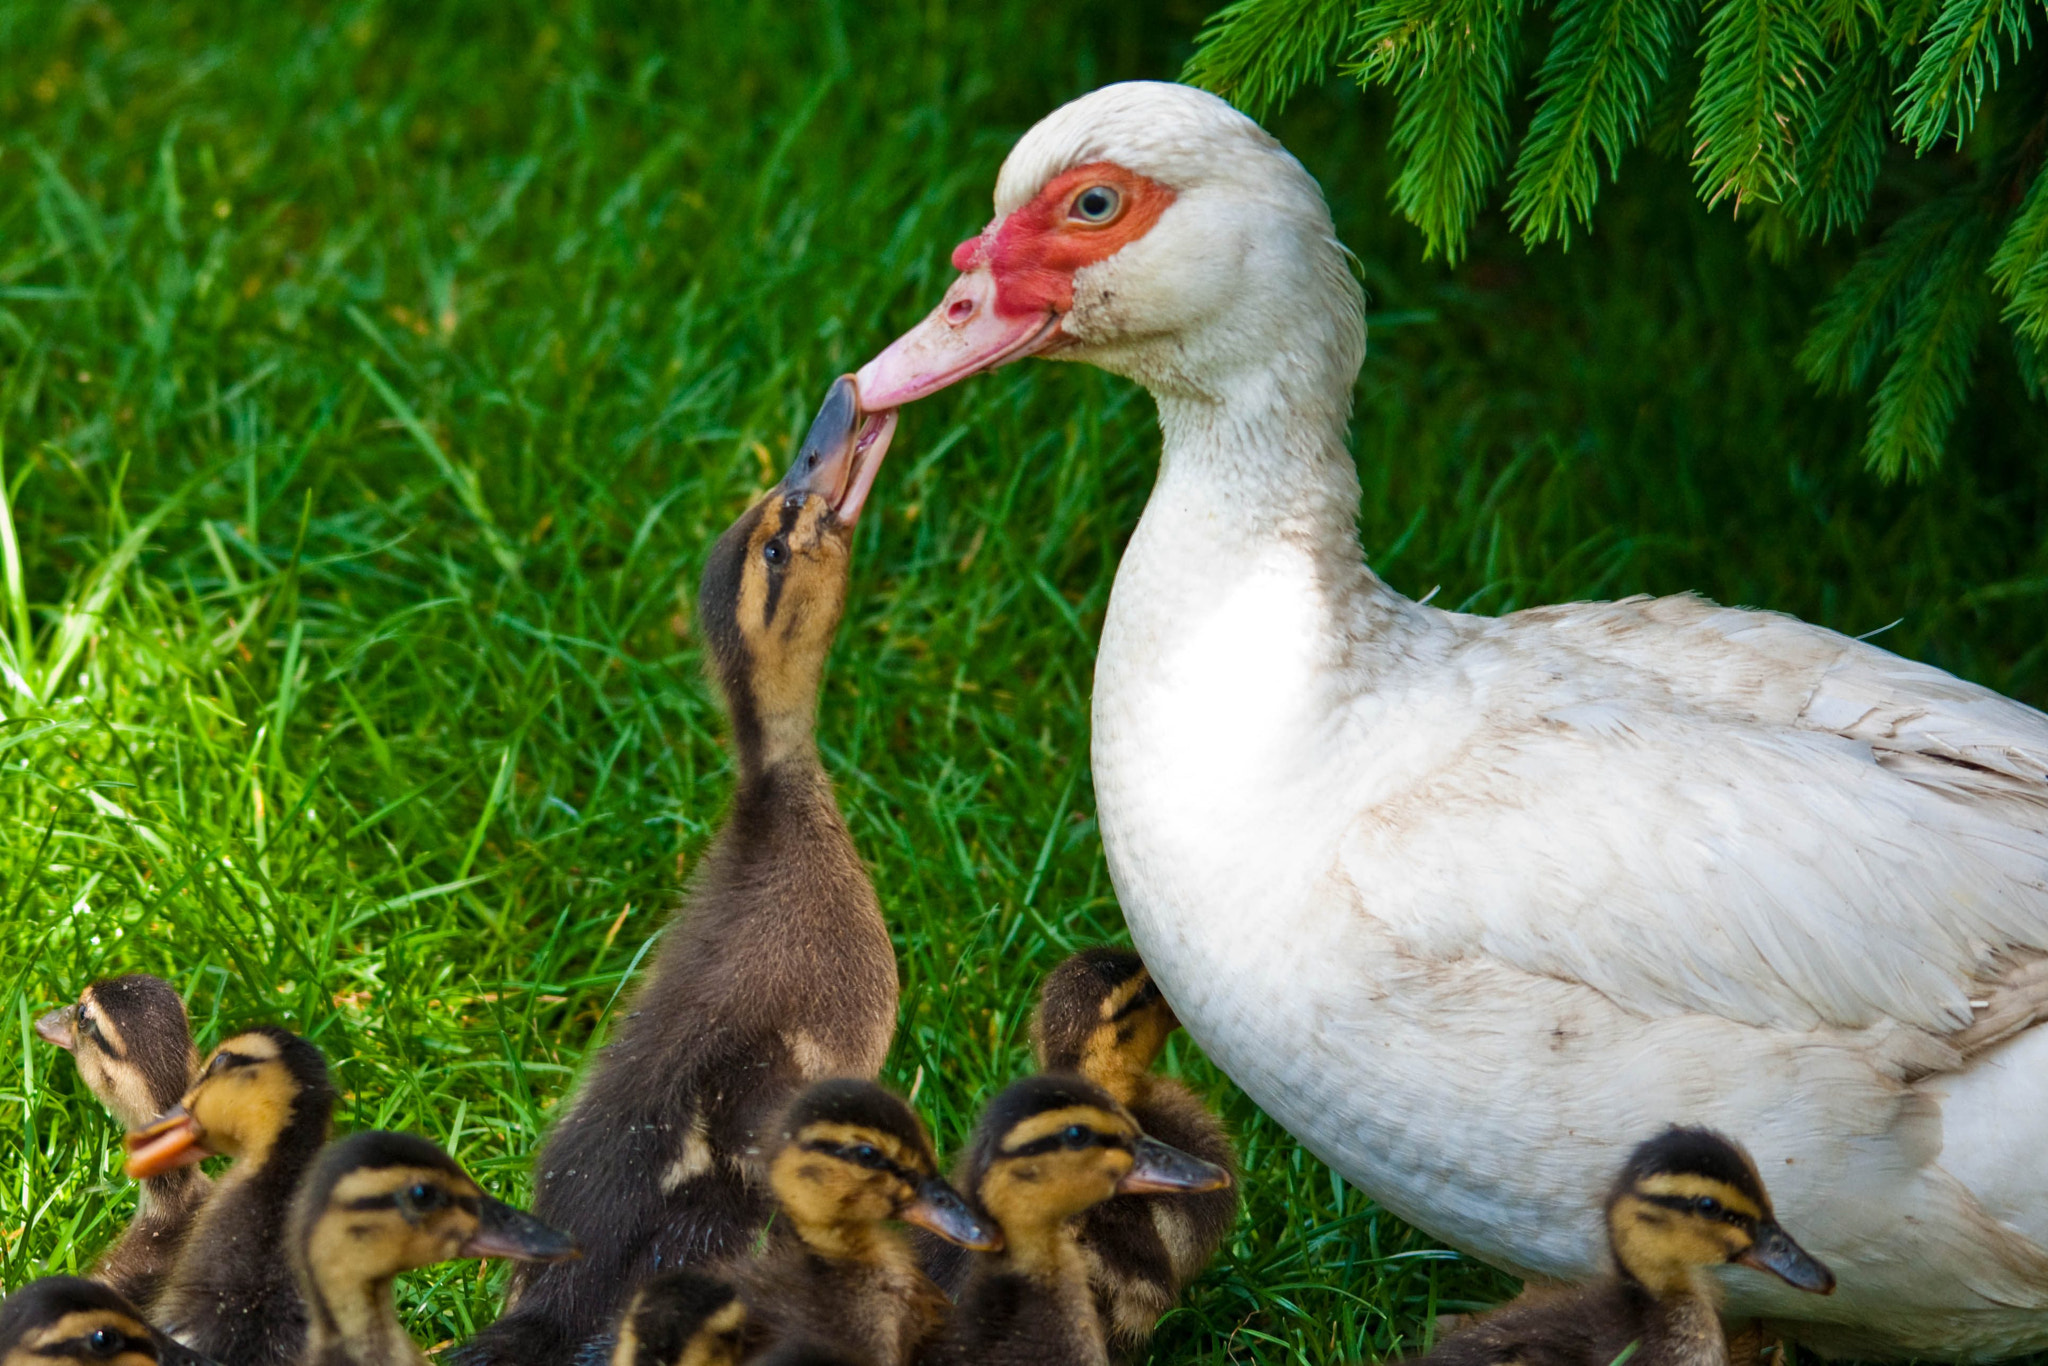 Photograph duck's school (16) by Vlado Ferencic on 500px